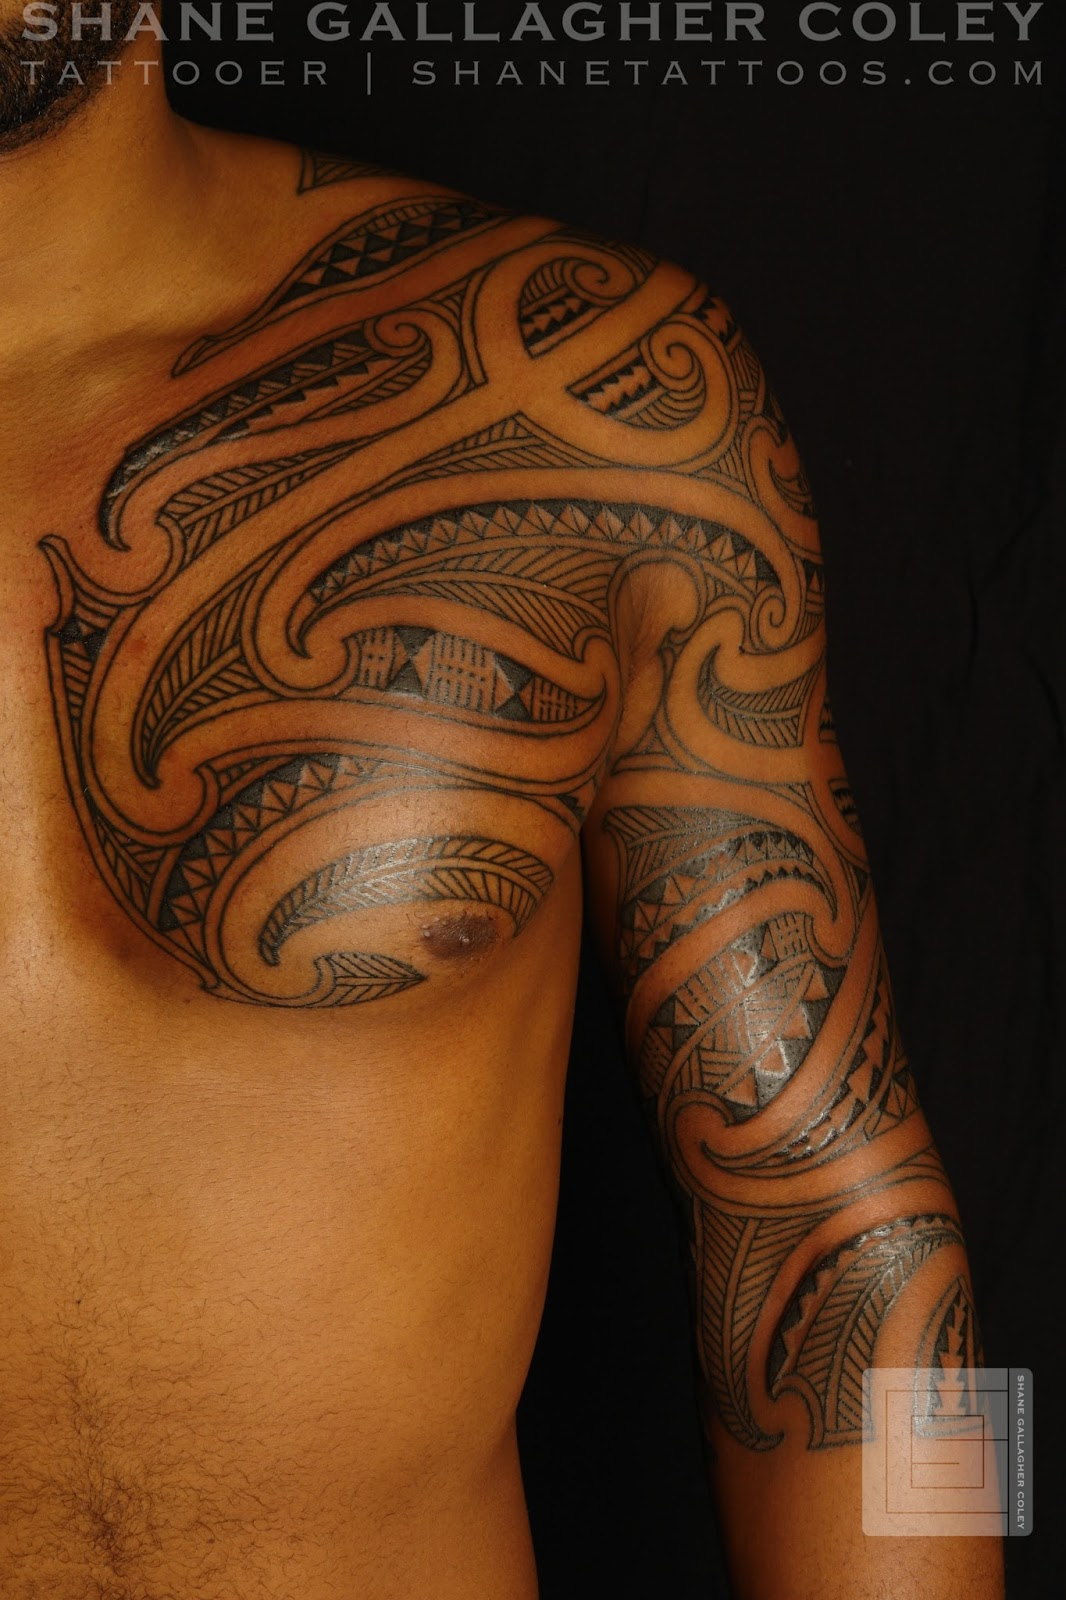 29cc00fb4b MAORI POLYNESIAN TATTOO: Maori/Polynesian Chest Half Sleeve Tattoo